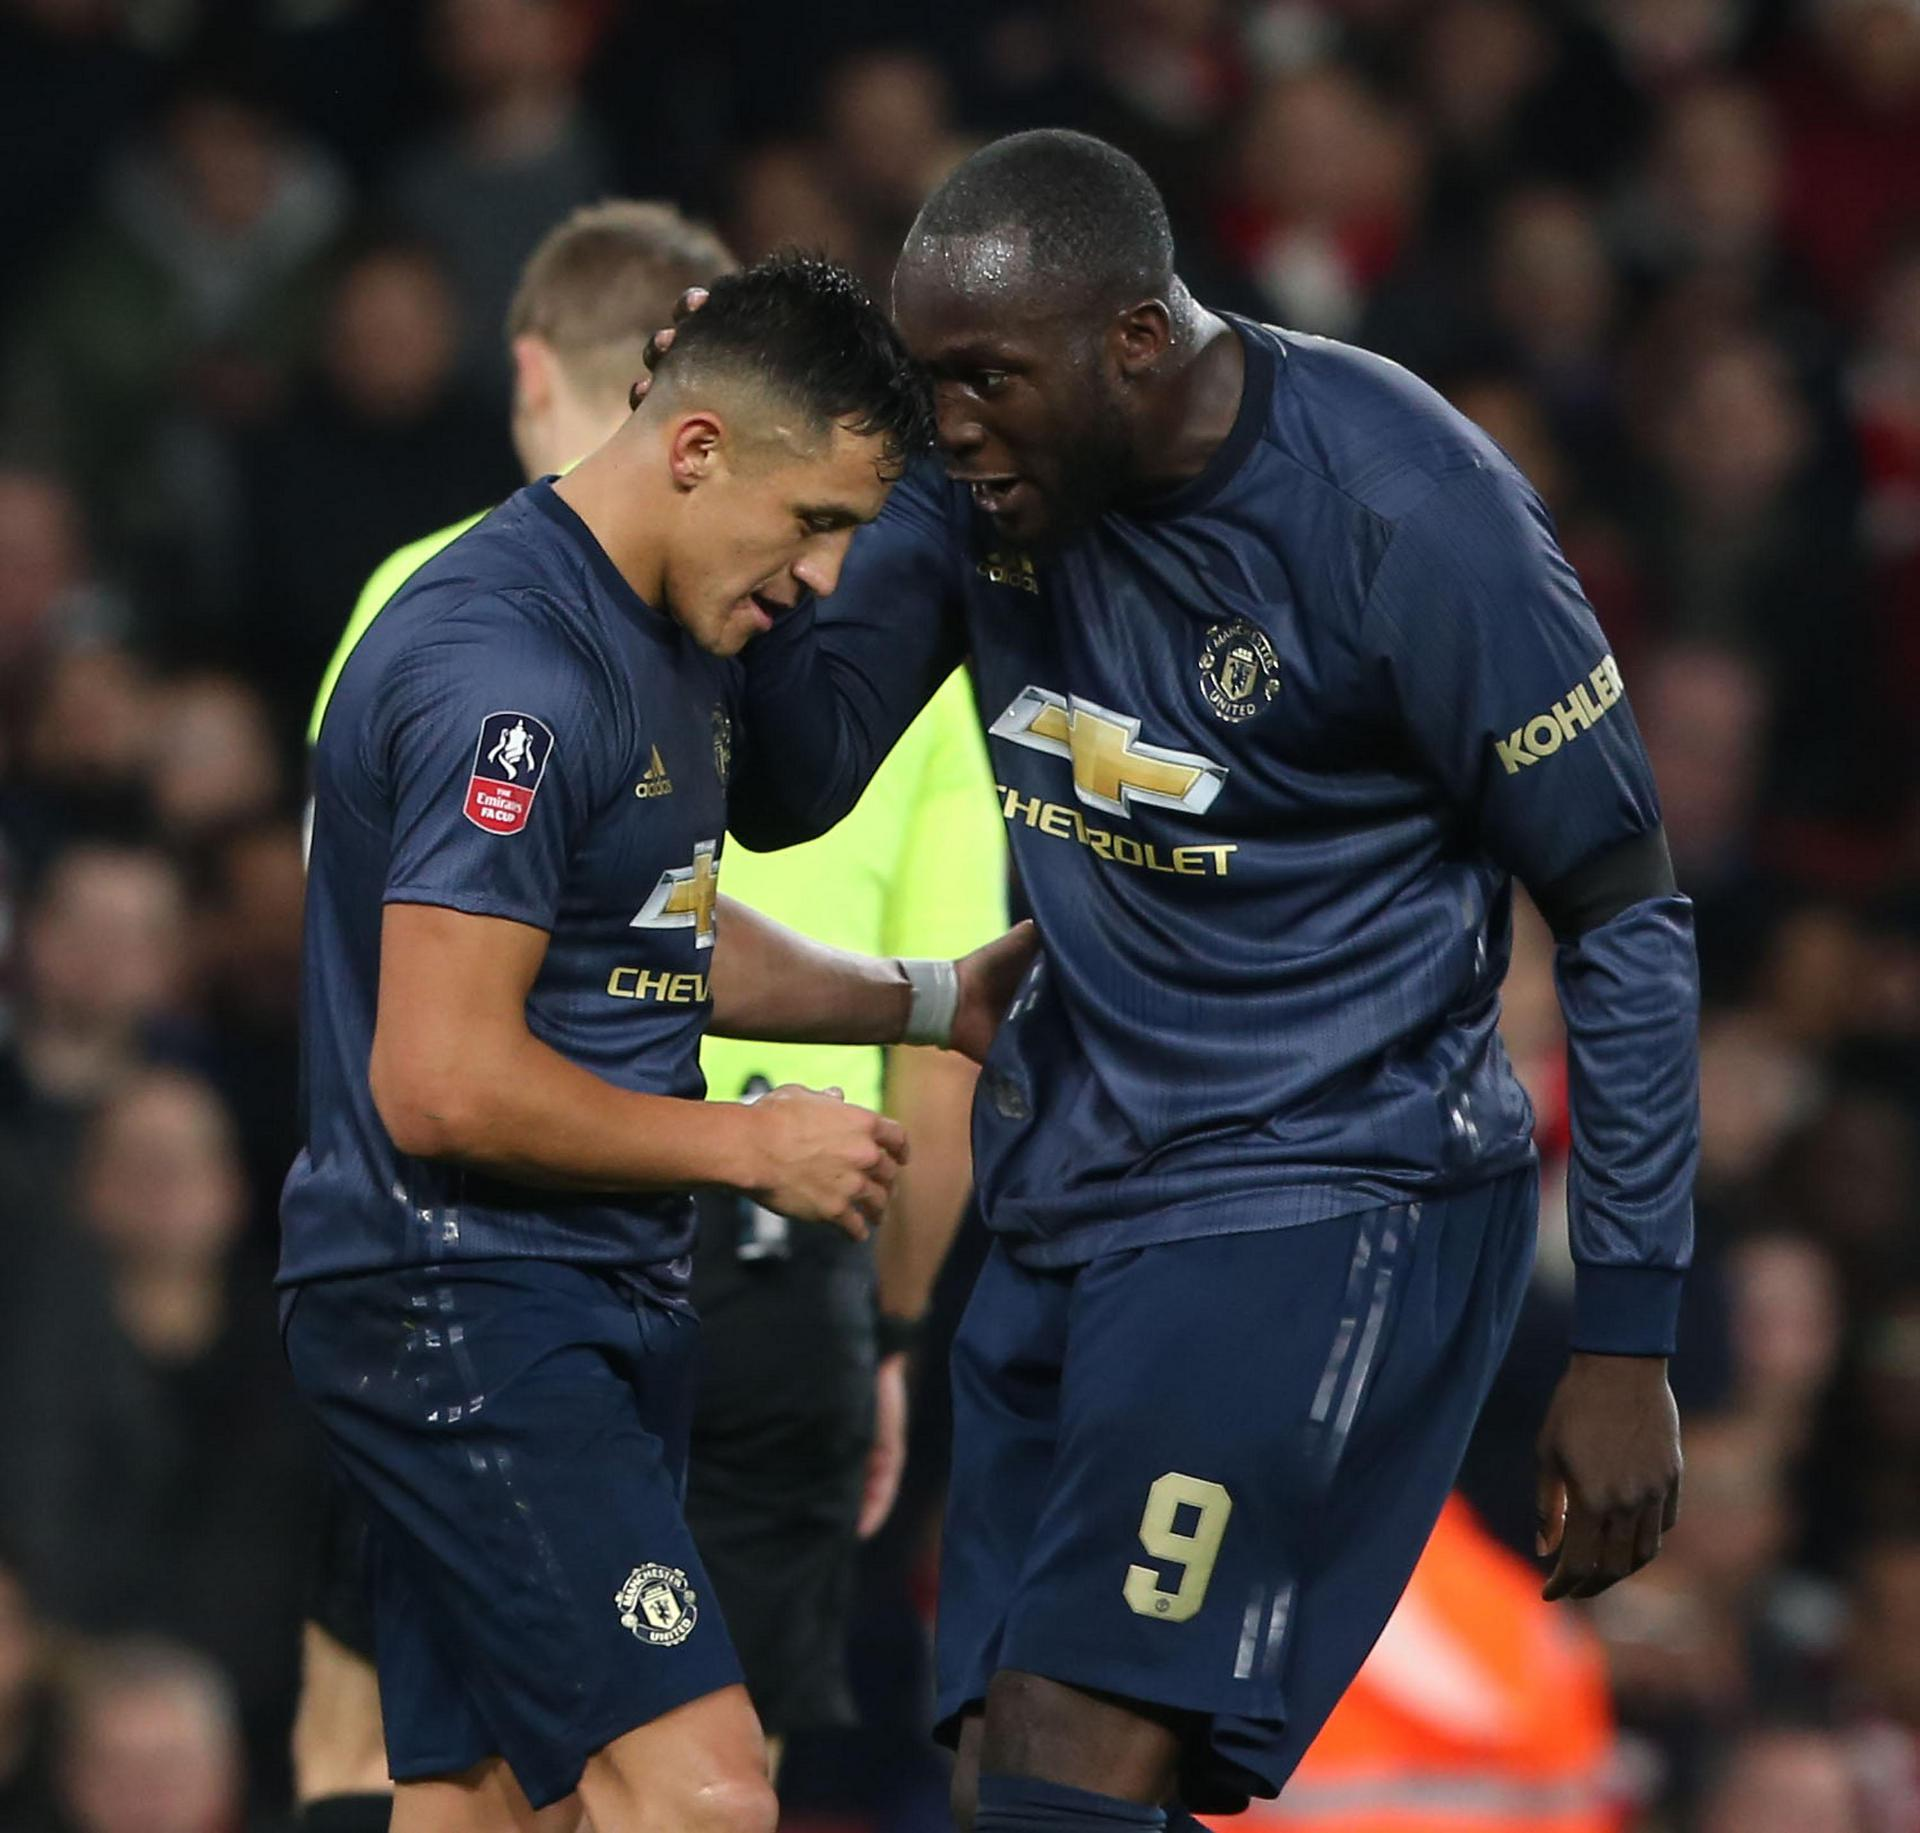 Alexis Sanchez and Romelu Lukaku celebrate